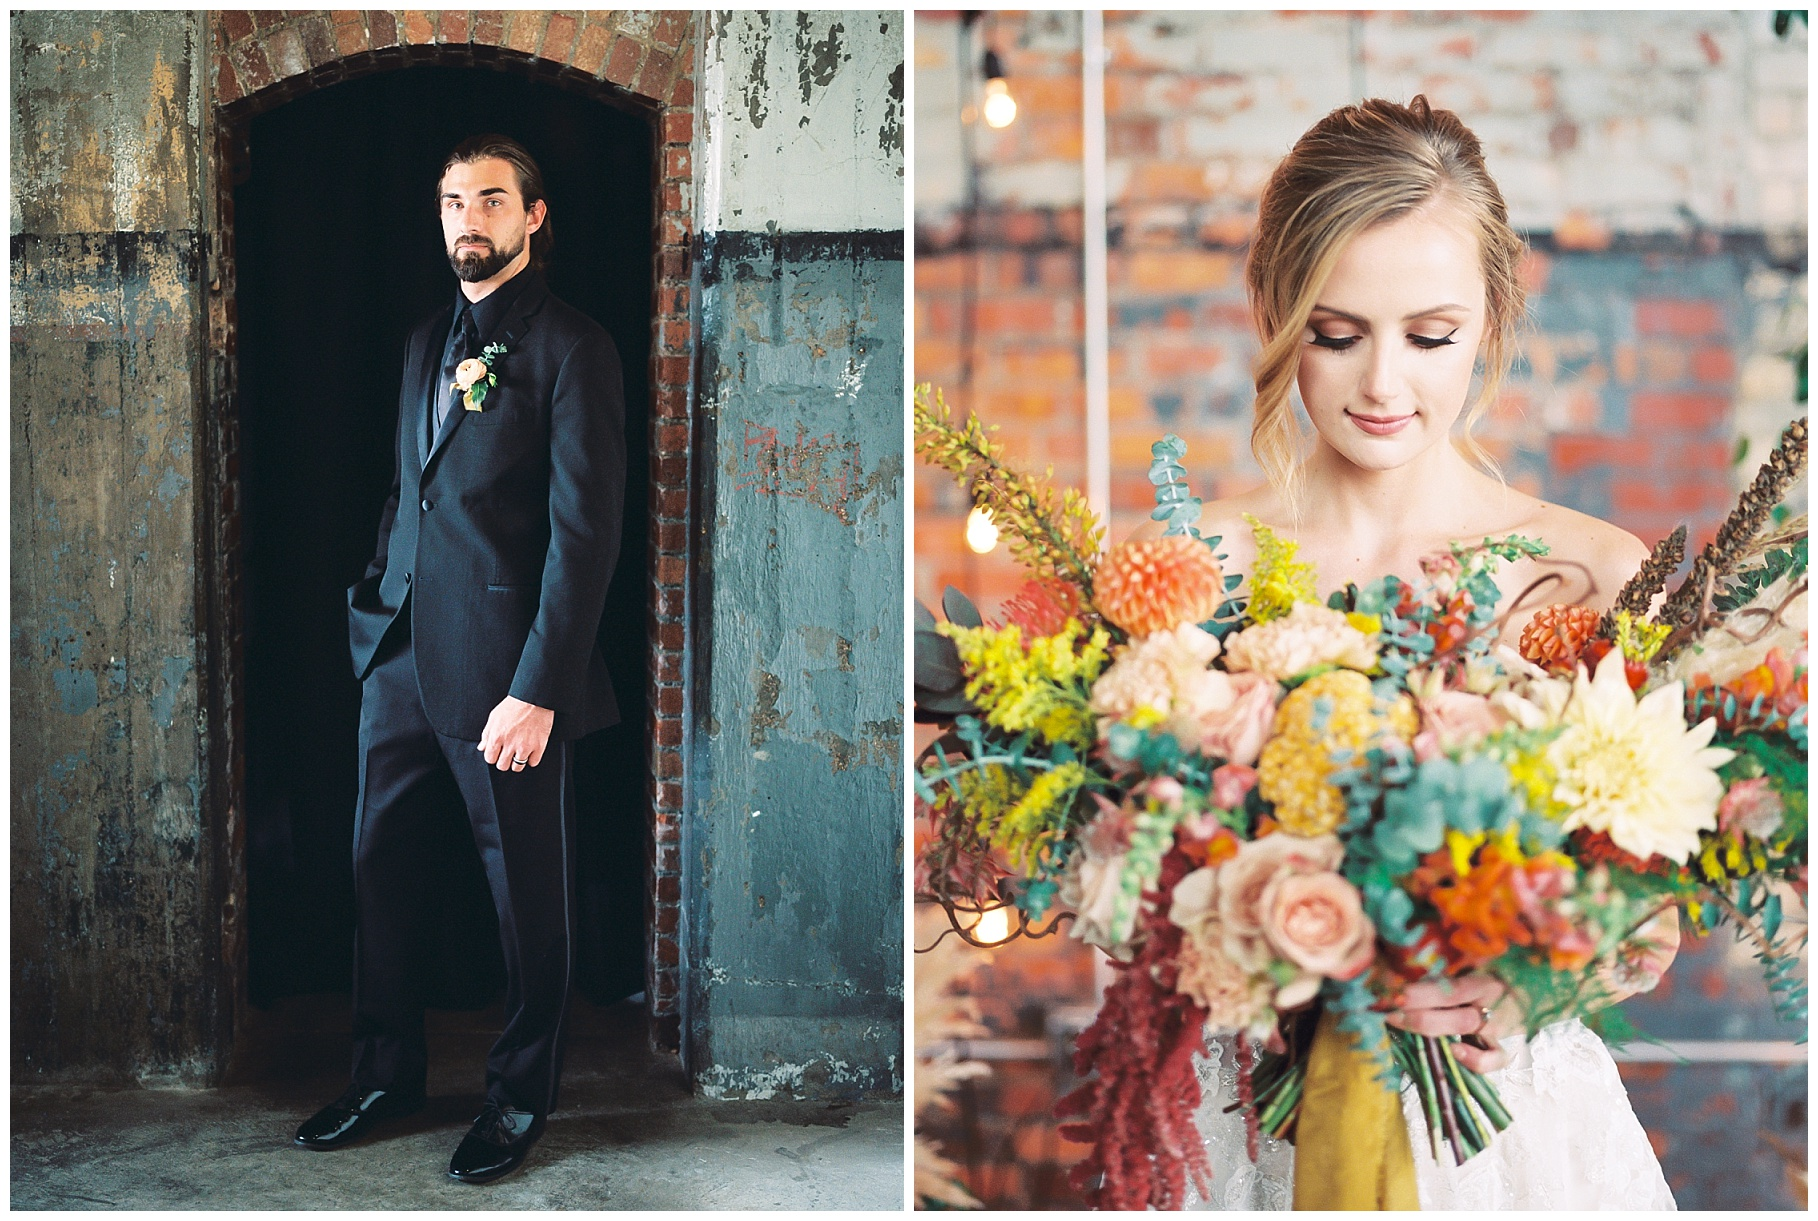 Urban Romance Wedding with Copper Accents at The Millbottom by Kelsi Kliethermes Photography Best Columbia Missouri Wedding Photographer_0024.jpg